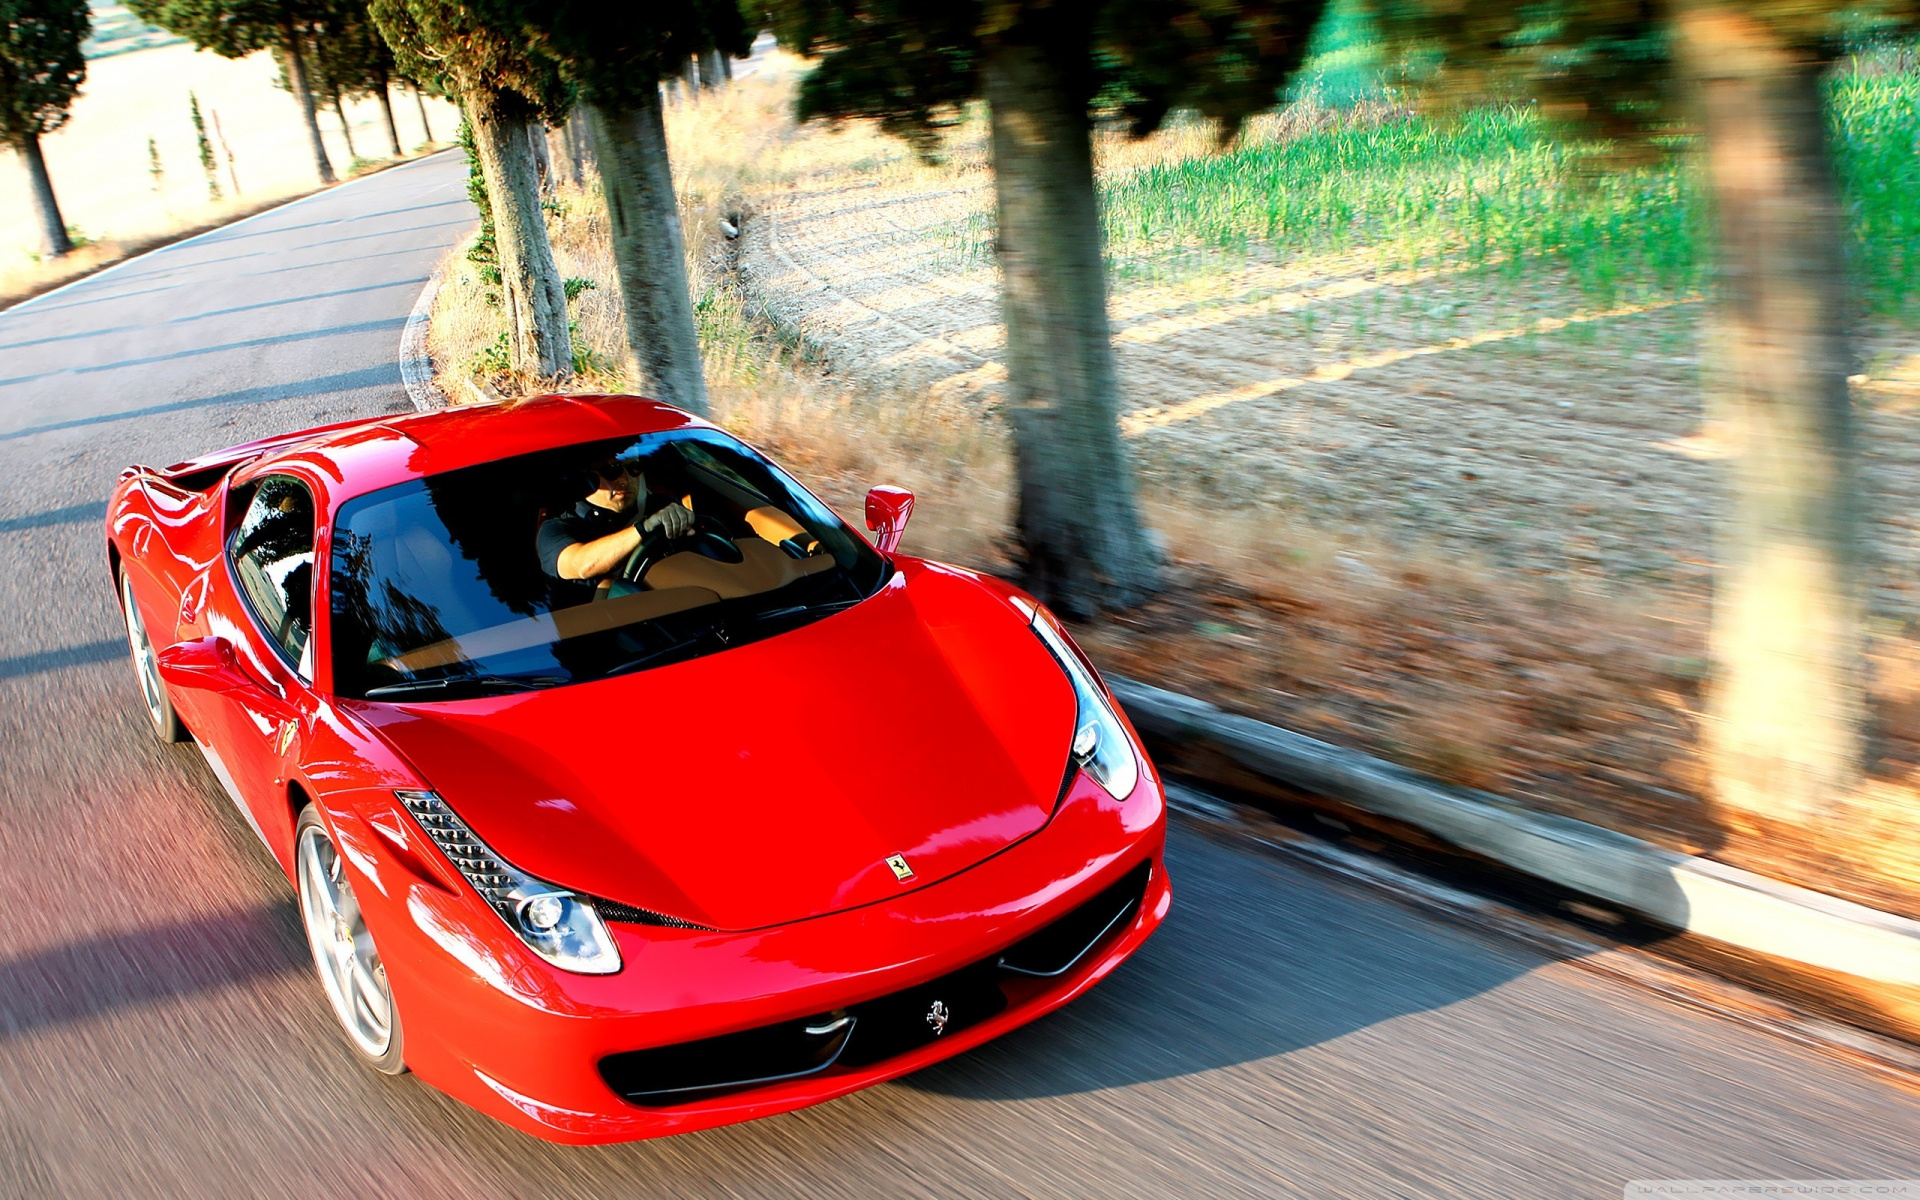 200 ferrari 458 countryside desktop pc and mac wallpaper高清图片